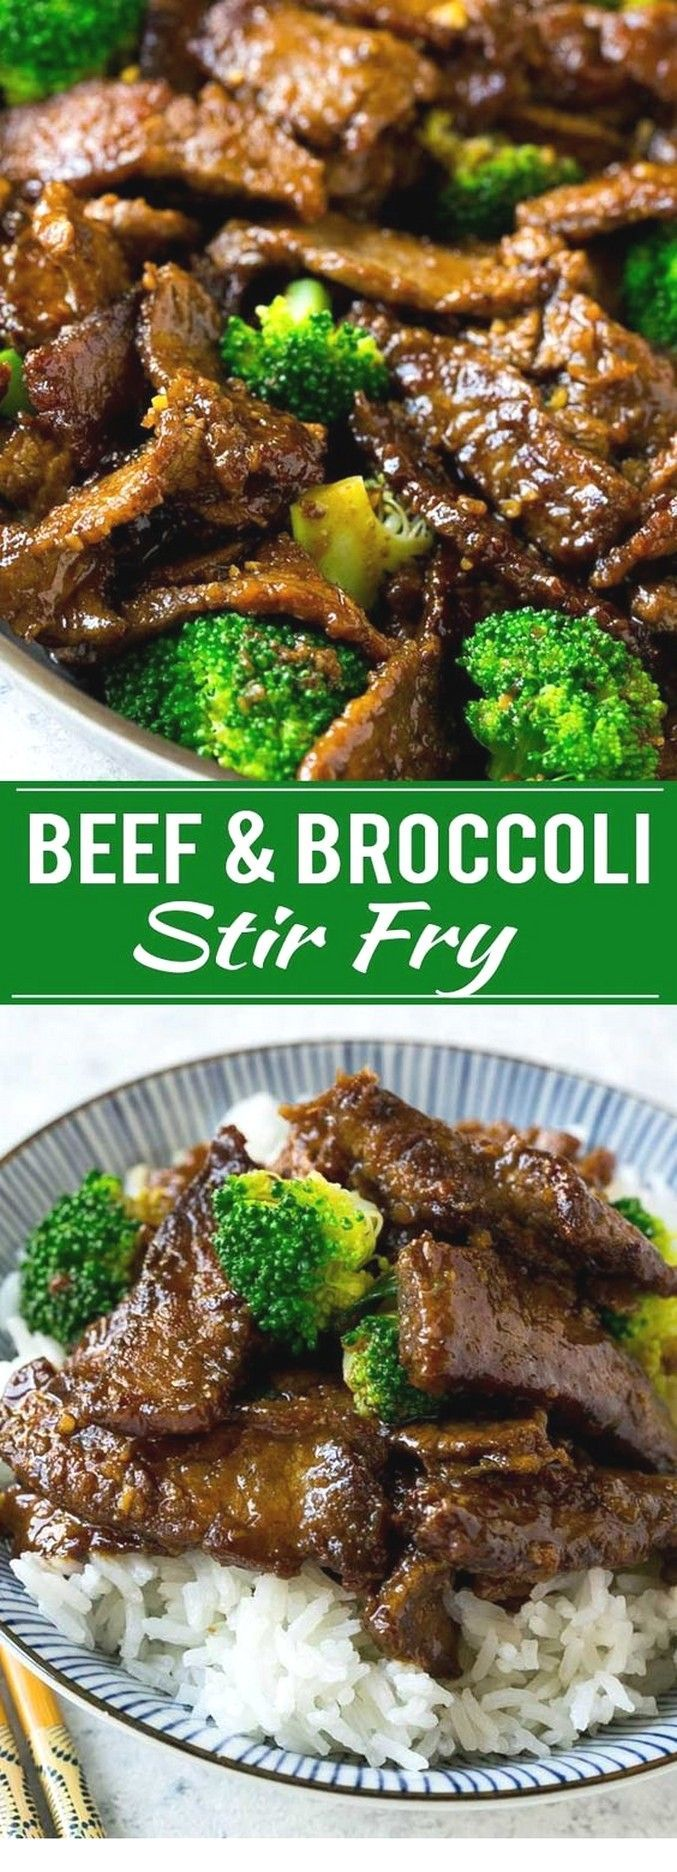 Beef And Broccoli Stir Fry | Chinese Food,Baking #Beef #BROCCOLI #Chinese #Chinese Food Recipes appetizers #Chinese Food Recipes authentic #Chinese Food Recipes beef #Chinese Food Recipes chicken #Chinese Food Recipes chop suey #Chinese Food Recipes crockpot #Chinese Food Recipes dessert #Chinese Food Recipes dumplings #Chinese Food Recipes easy #Chinese Food Recipes egg rolls #Chinese Food Recipes for a crowd #Chinese Food Recipes for kids #Chinese Food Recipes general tso #Chinese Food Recipes